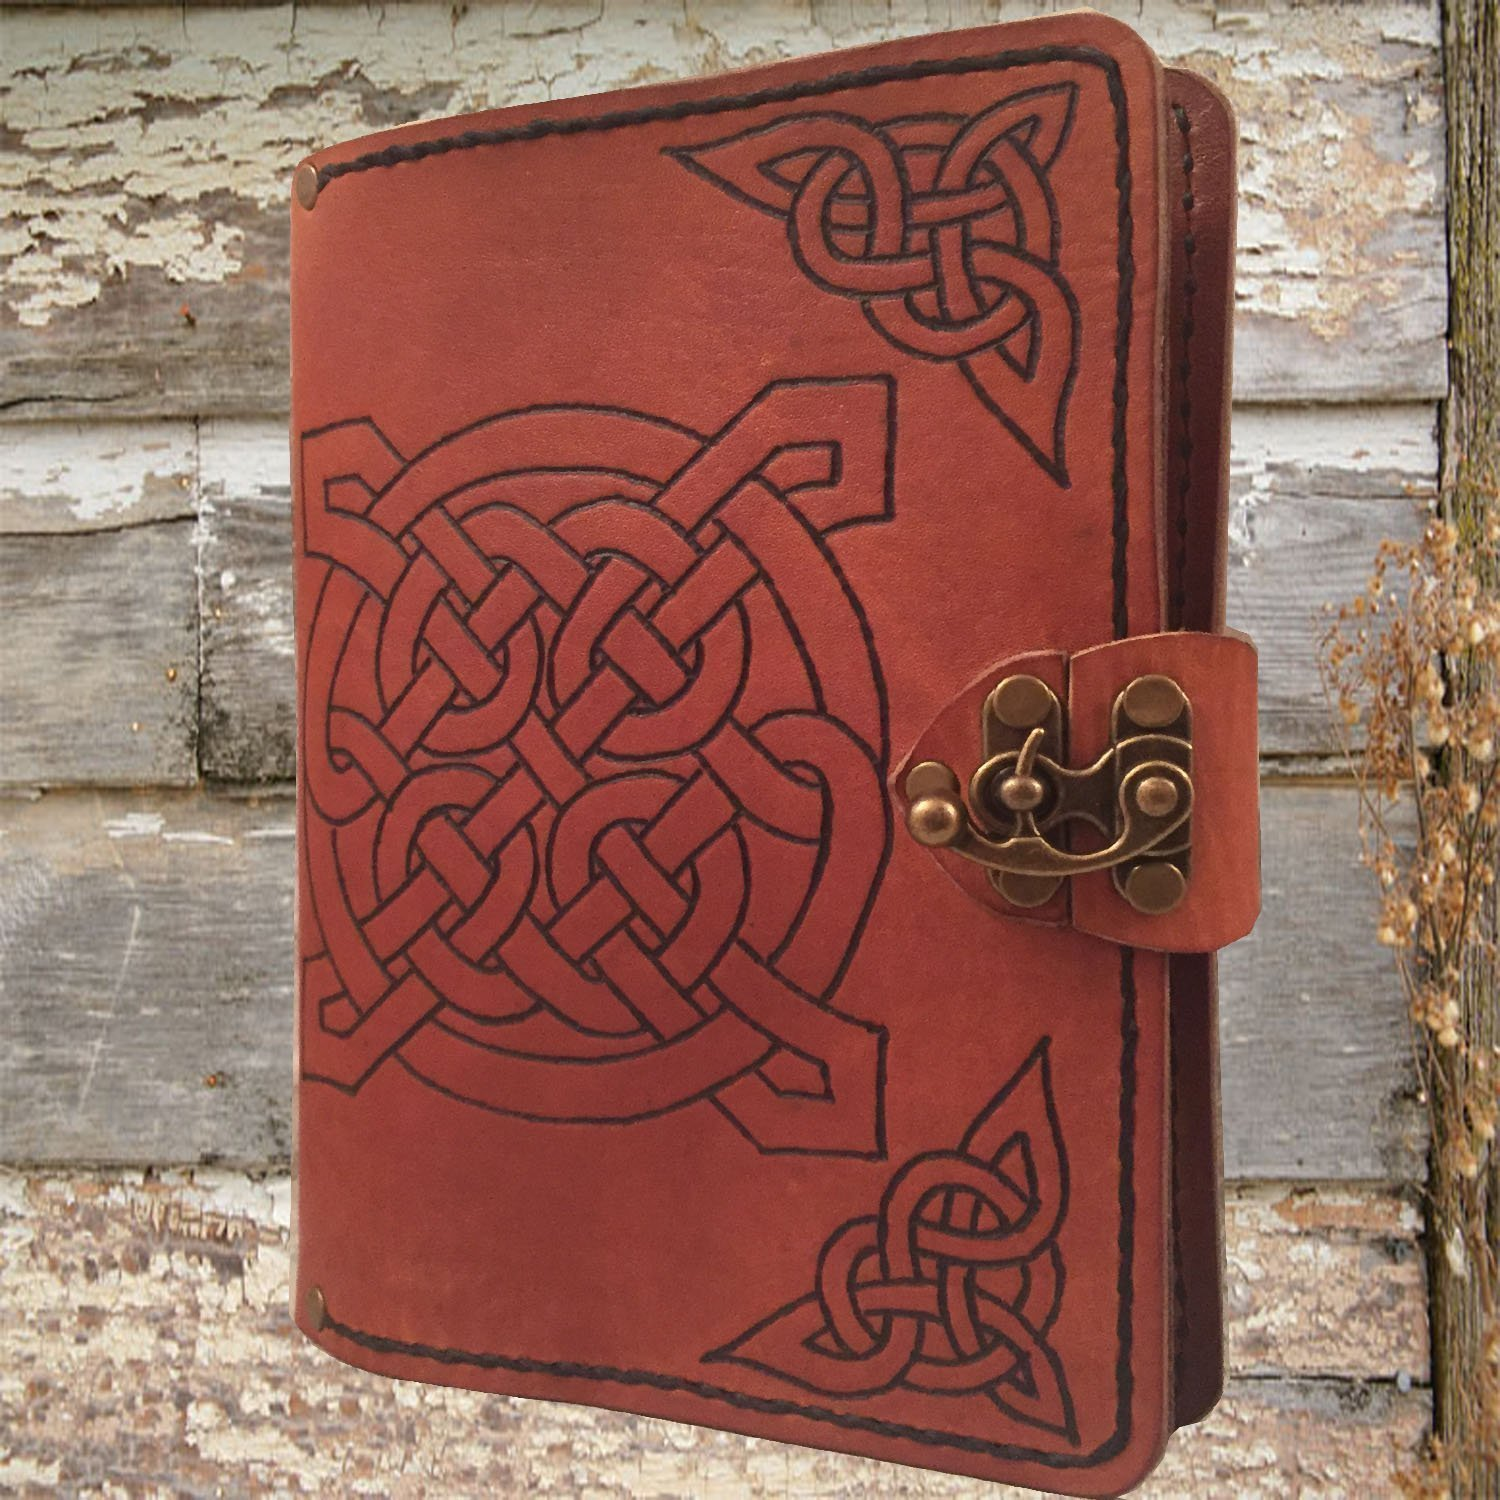 Handmade leather journal,refillable leather journal,personalized leather journal,celtic knots leather journal,leather notebook,distressed leather journal,leather sketchbook by Papyrus Crafts